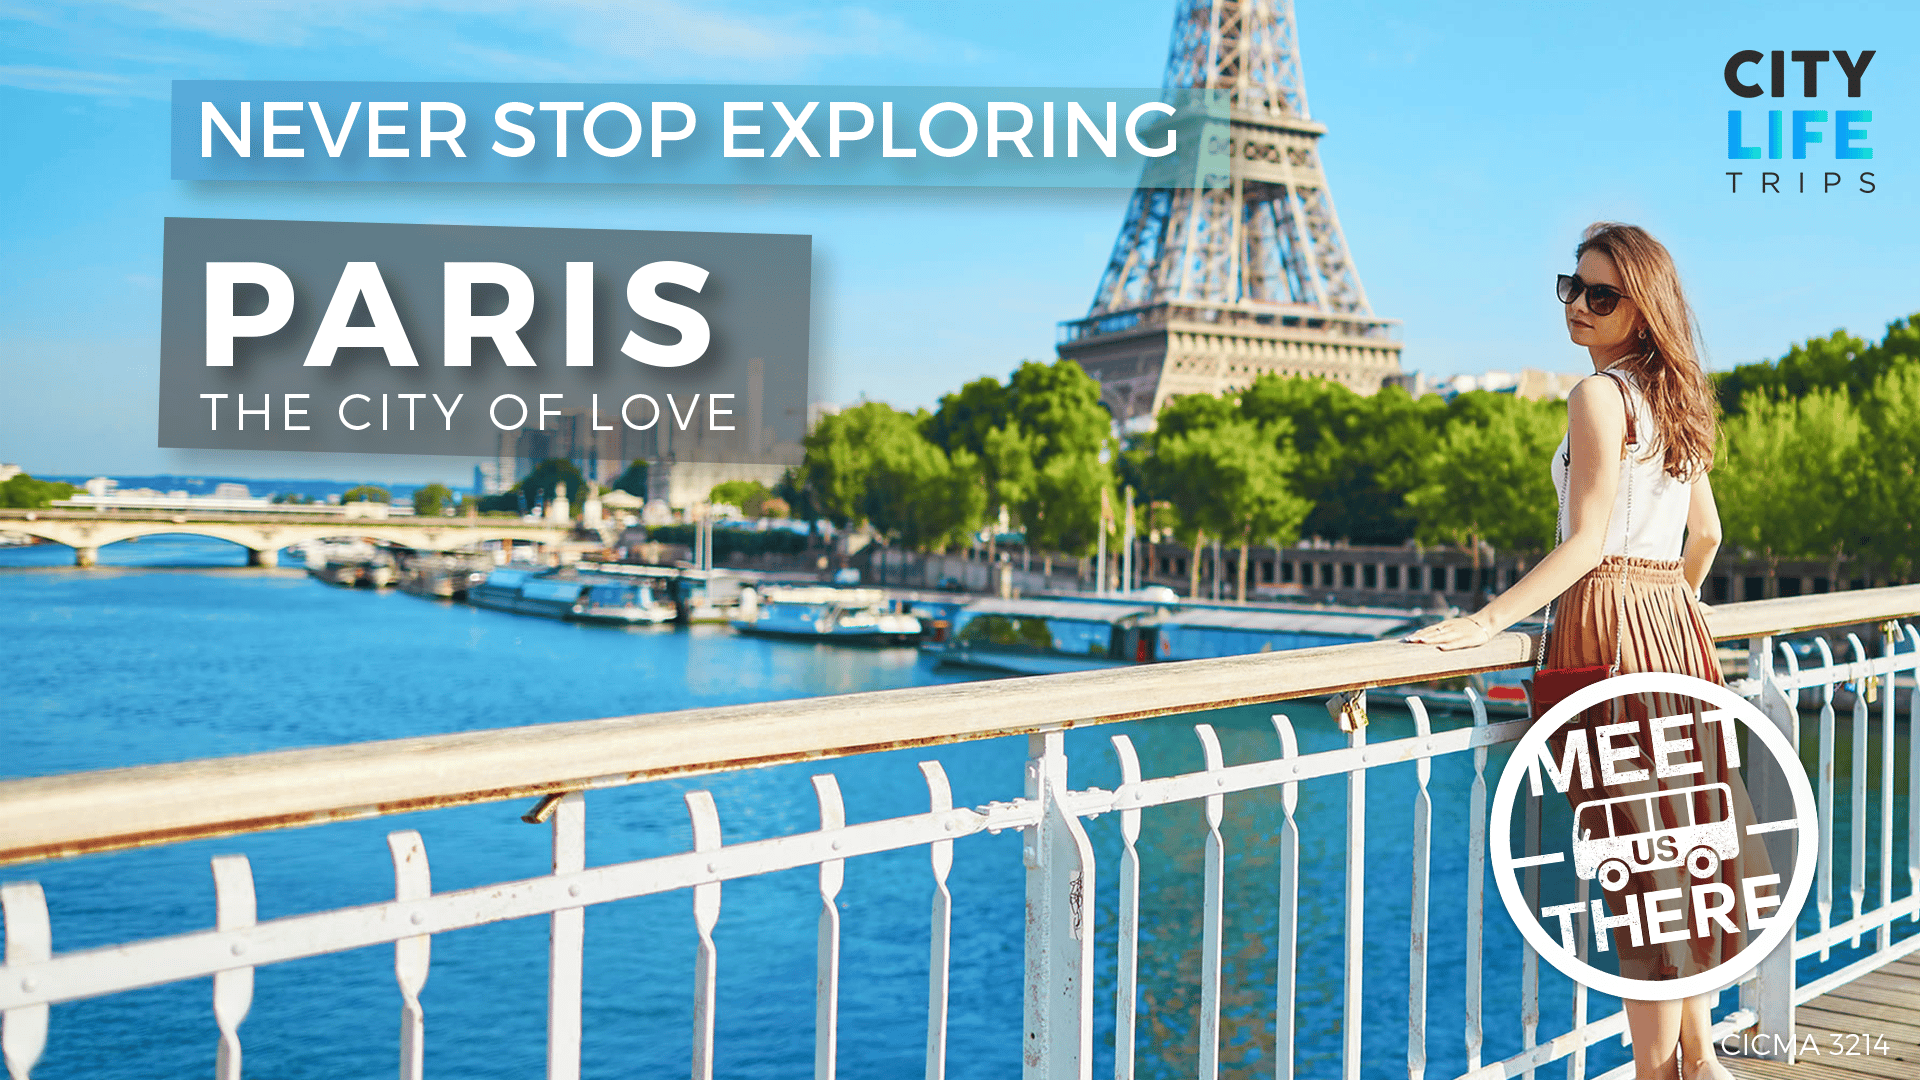 Paris – The City of Love (Meet us There)